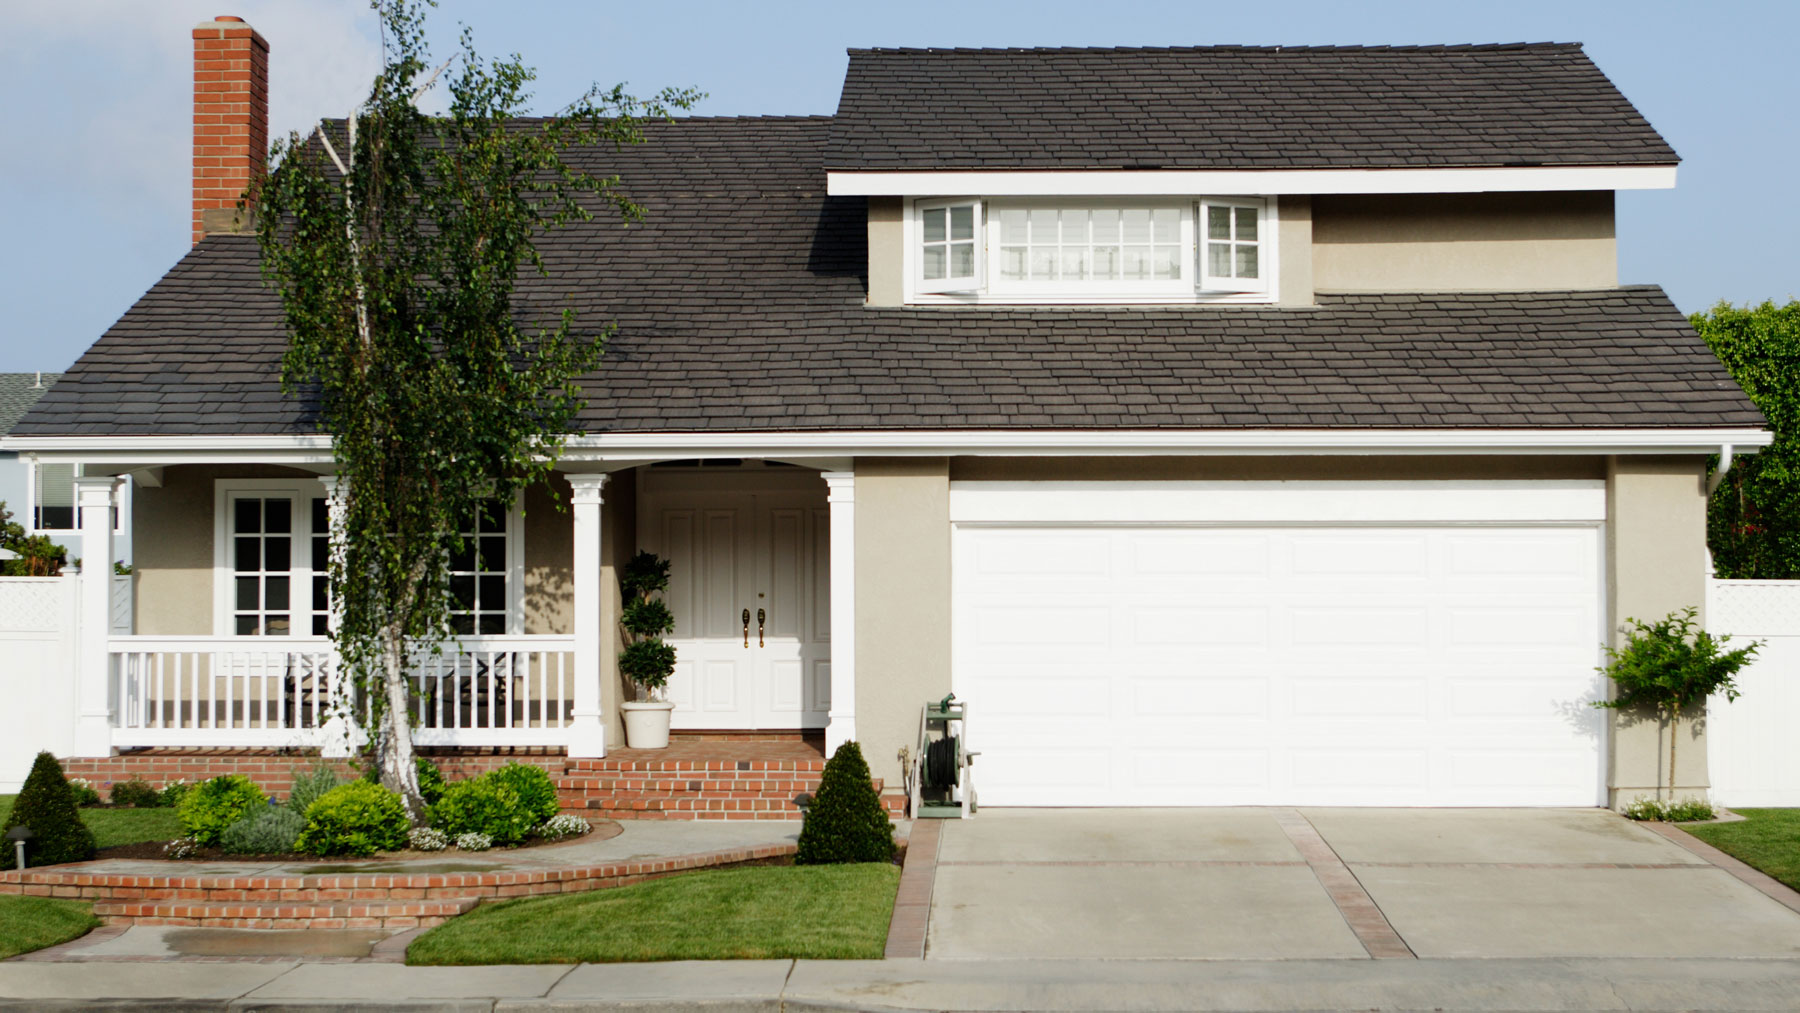 14 Curb Appeal Ideas That Are Actually Doable | Real Simple